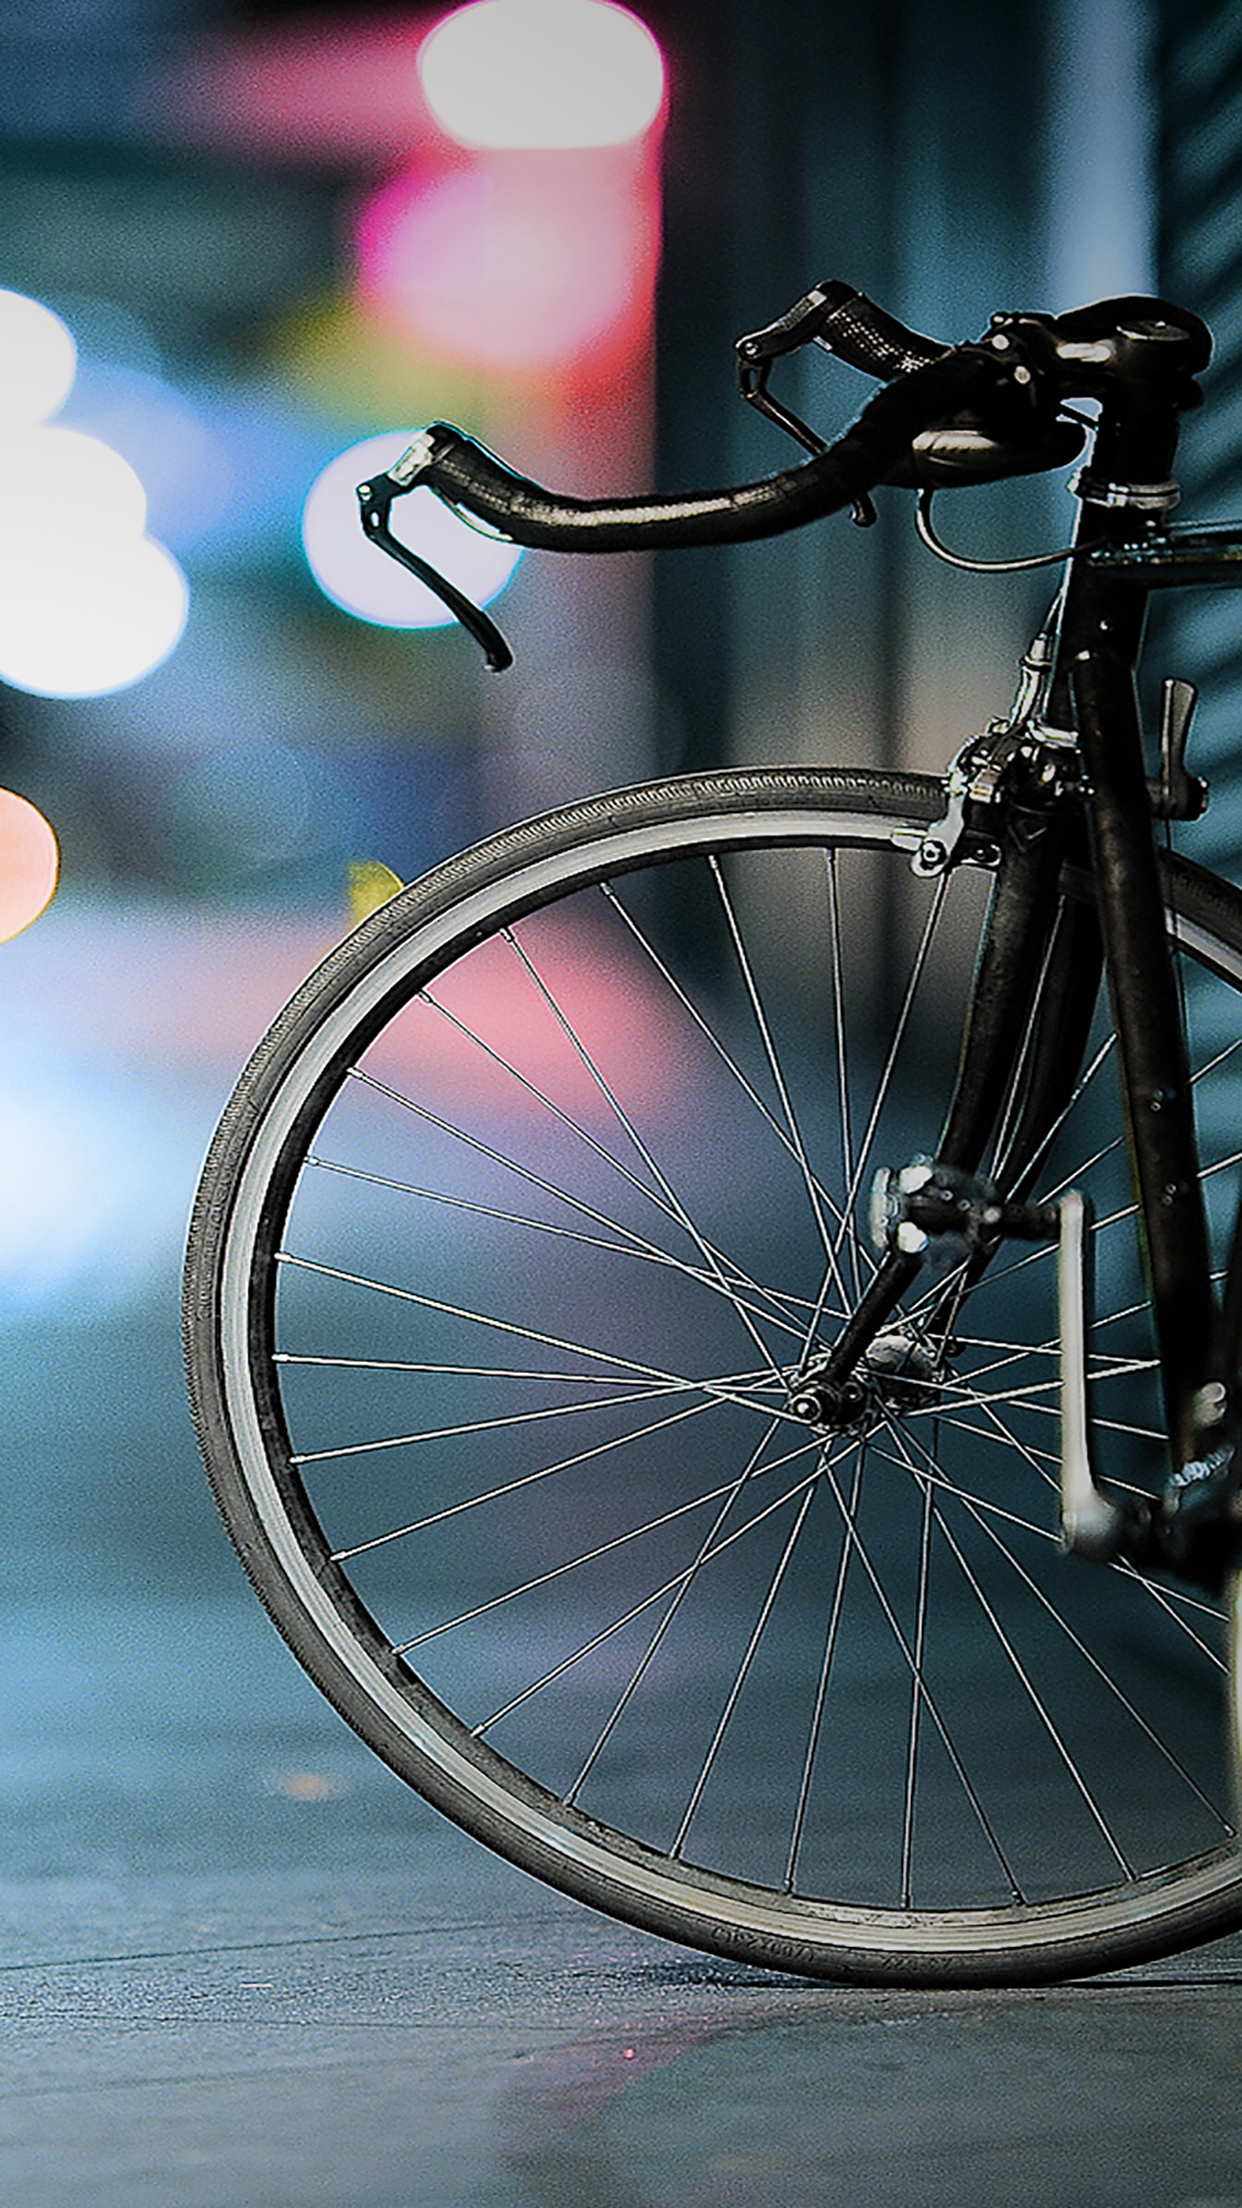 Bicycle 3 3Wallpapers iPhone Parallax Bicycle : 3